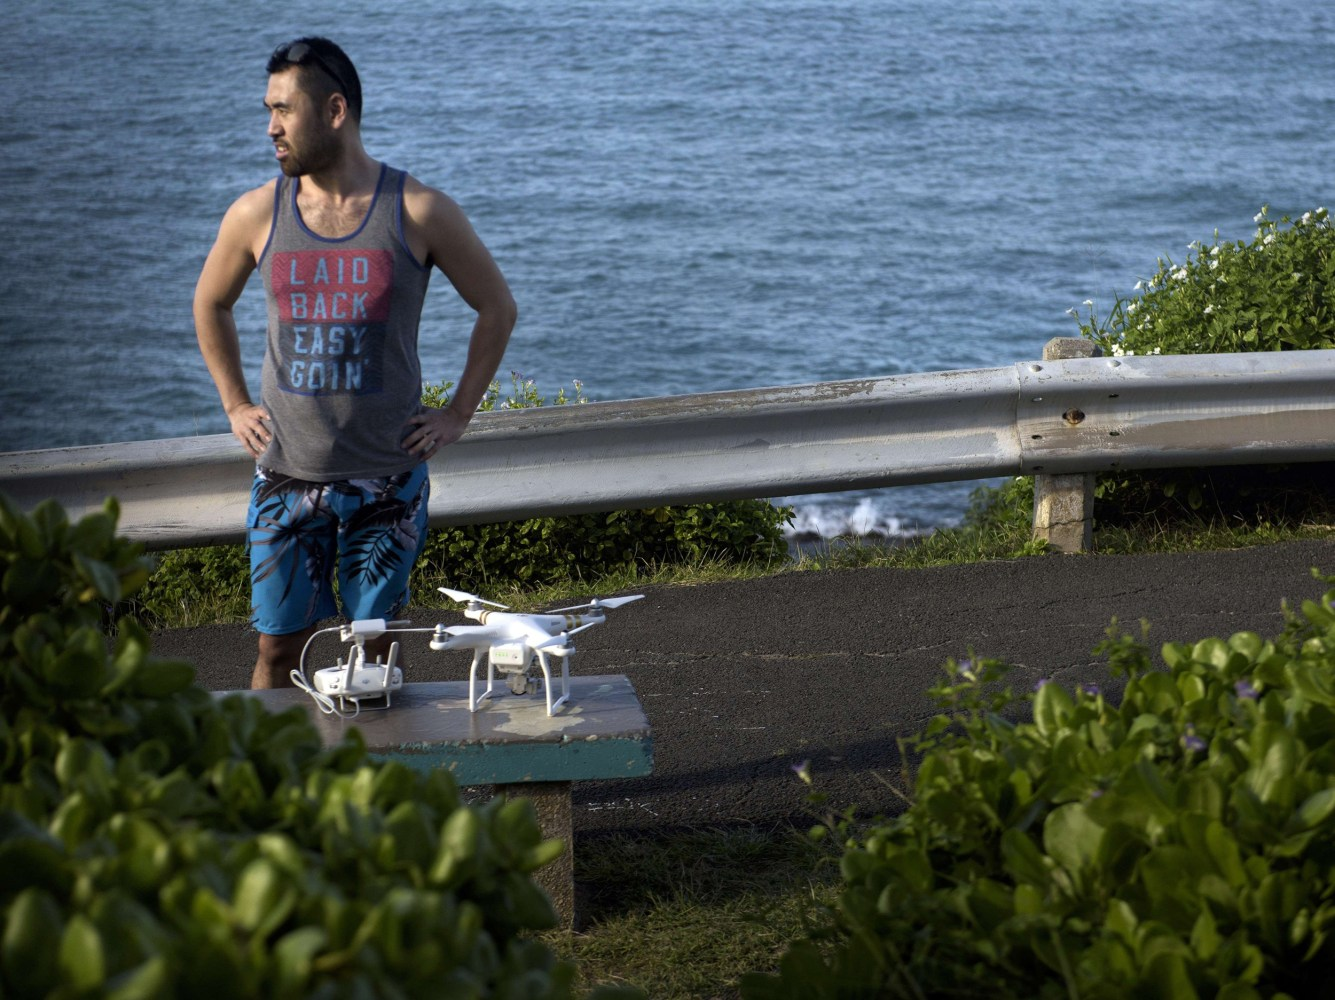 drone buzzes president barack obama 39 s motorcade in hawaii